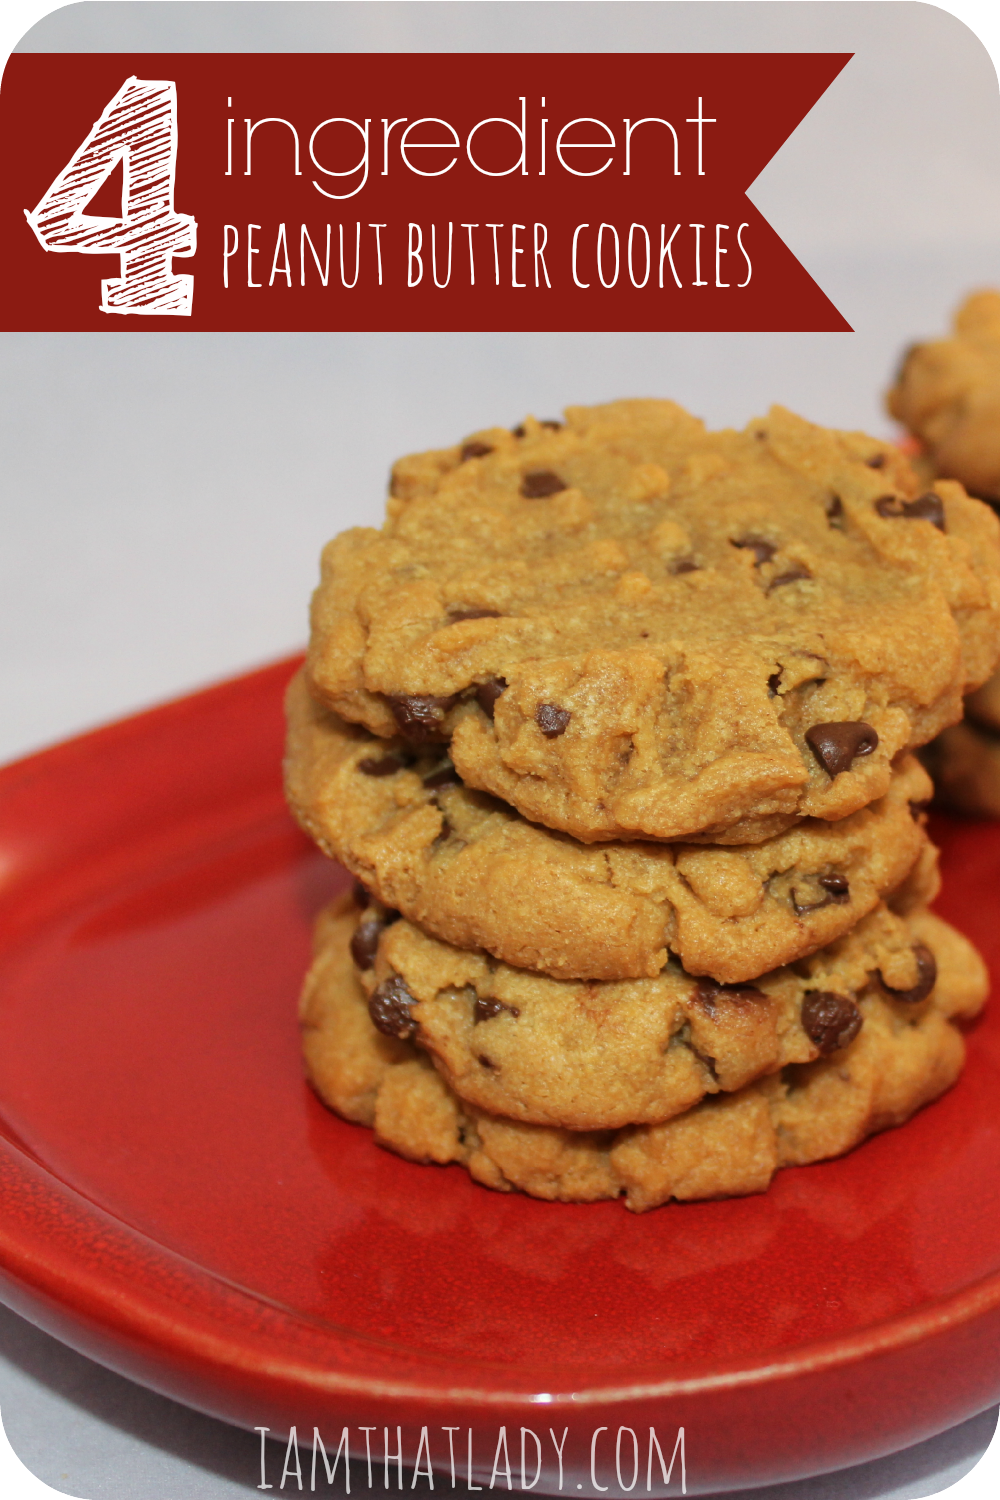 Are you looking for some simple cookies Here is an easy 4 ingredient peanut butter cookie recipe. It is gluten and grain free too!